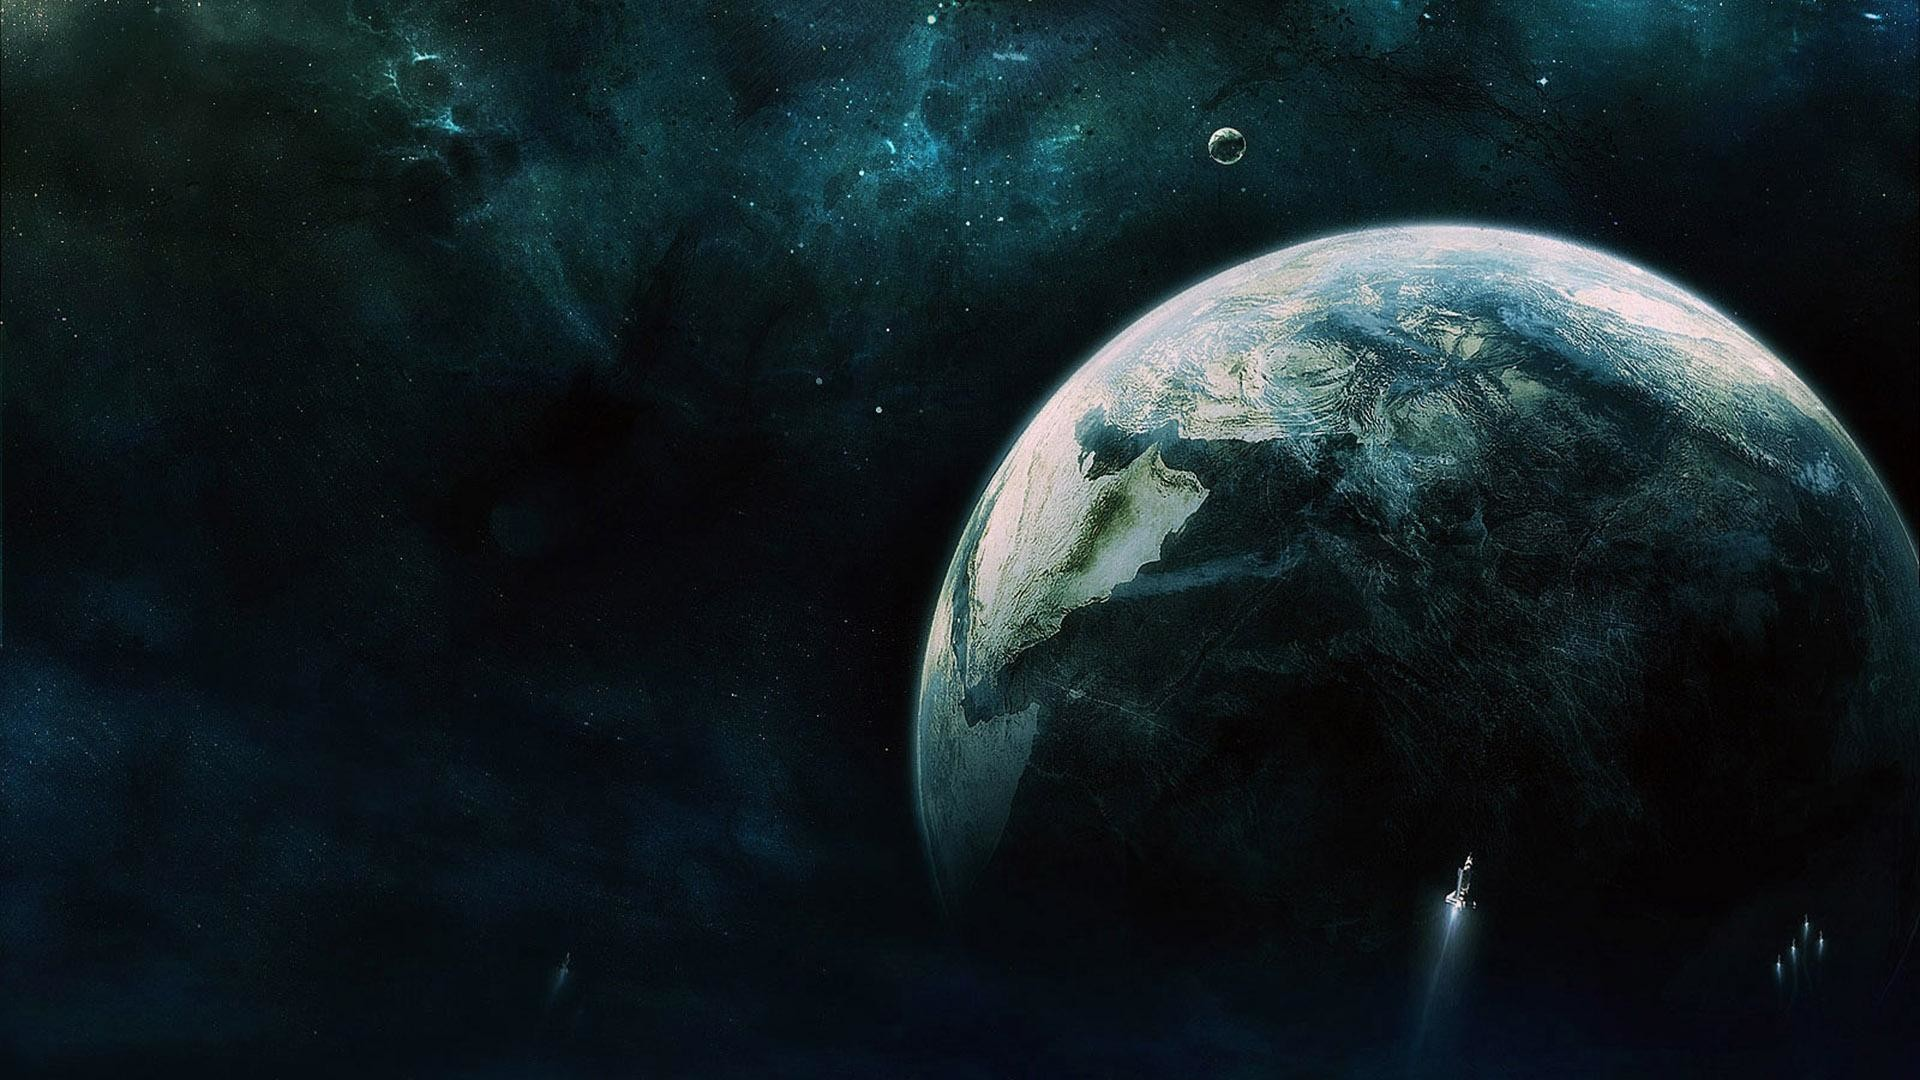 Epic-space-art-background-wallpaper-HD